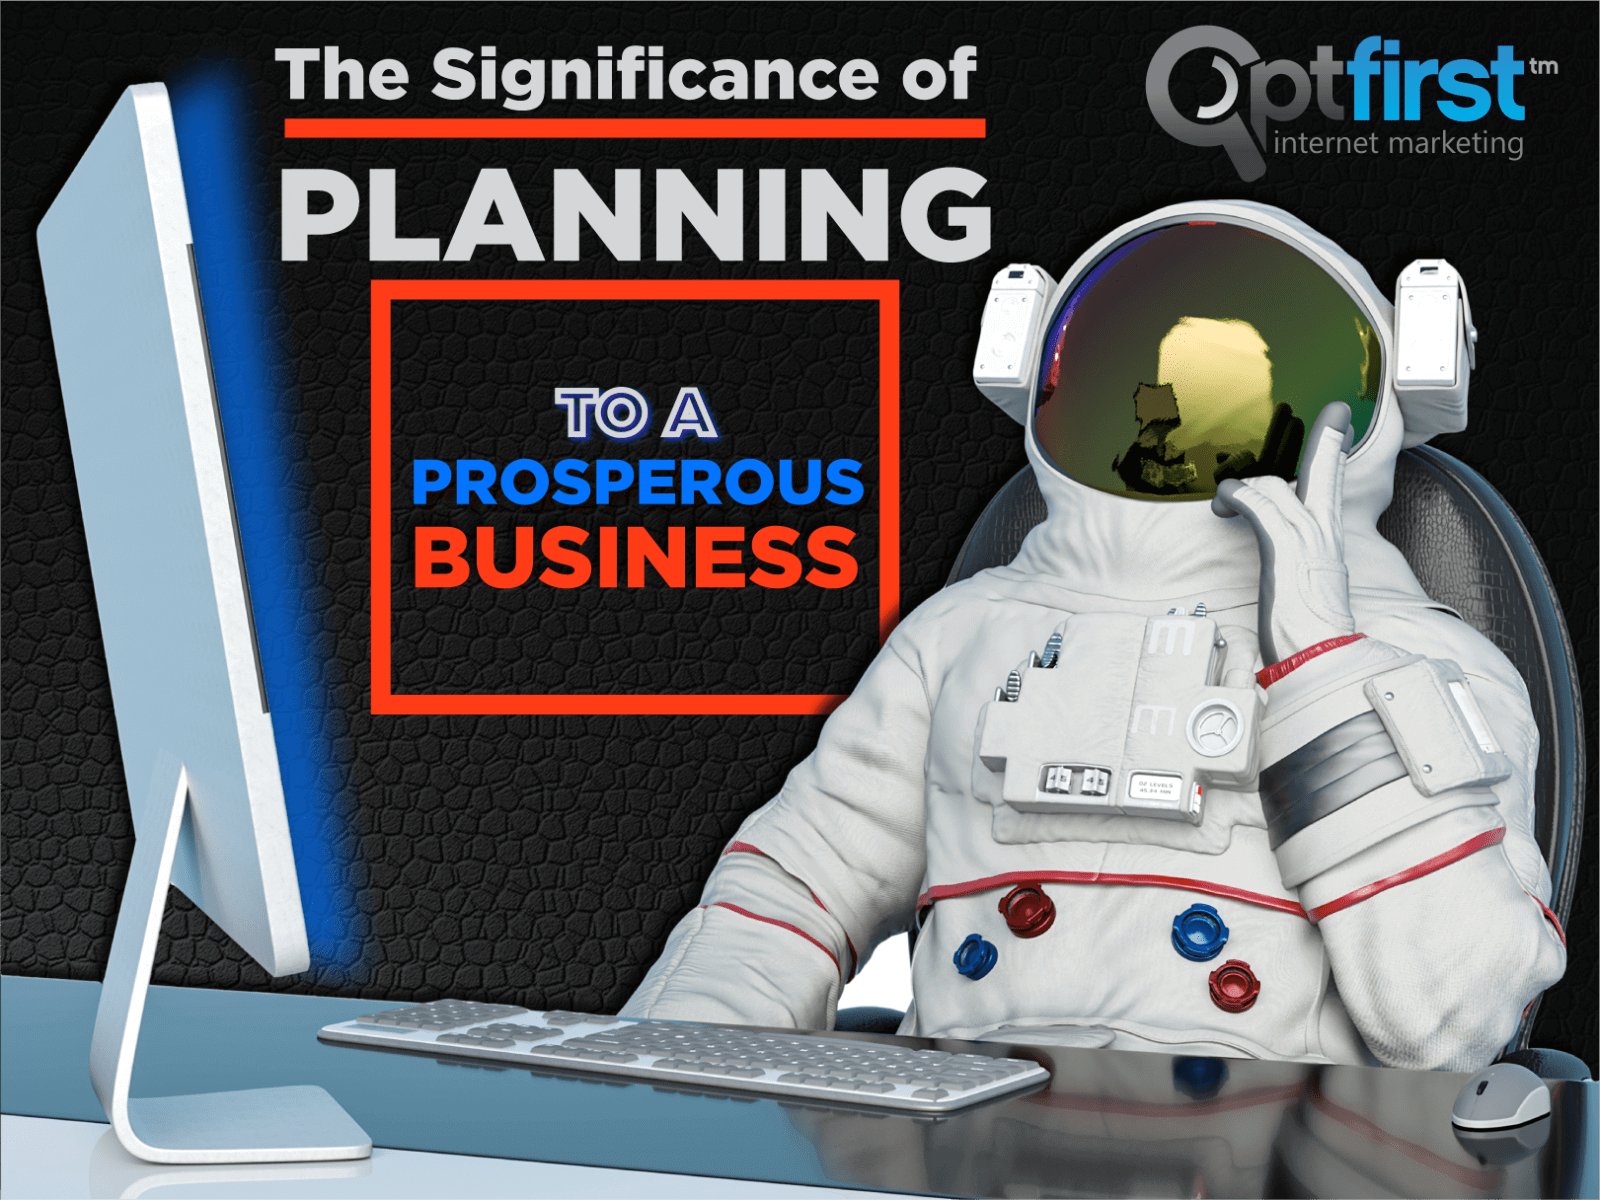 THE SIGNIFICANCE OF PLANNING TO A PROSPEROUS BUSINESS